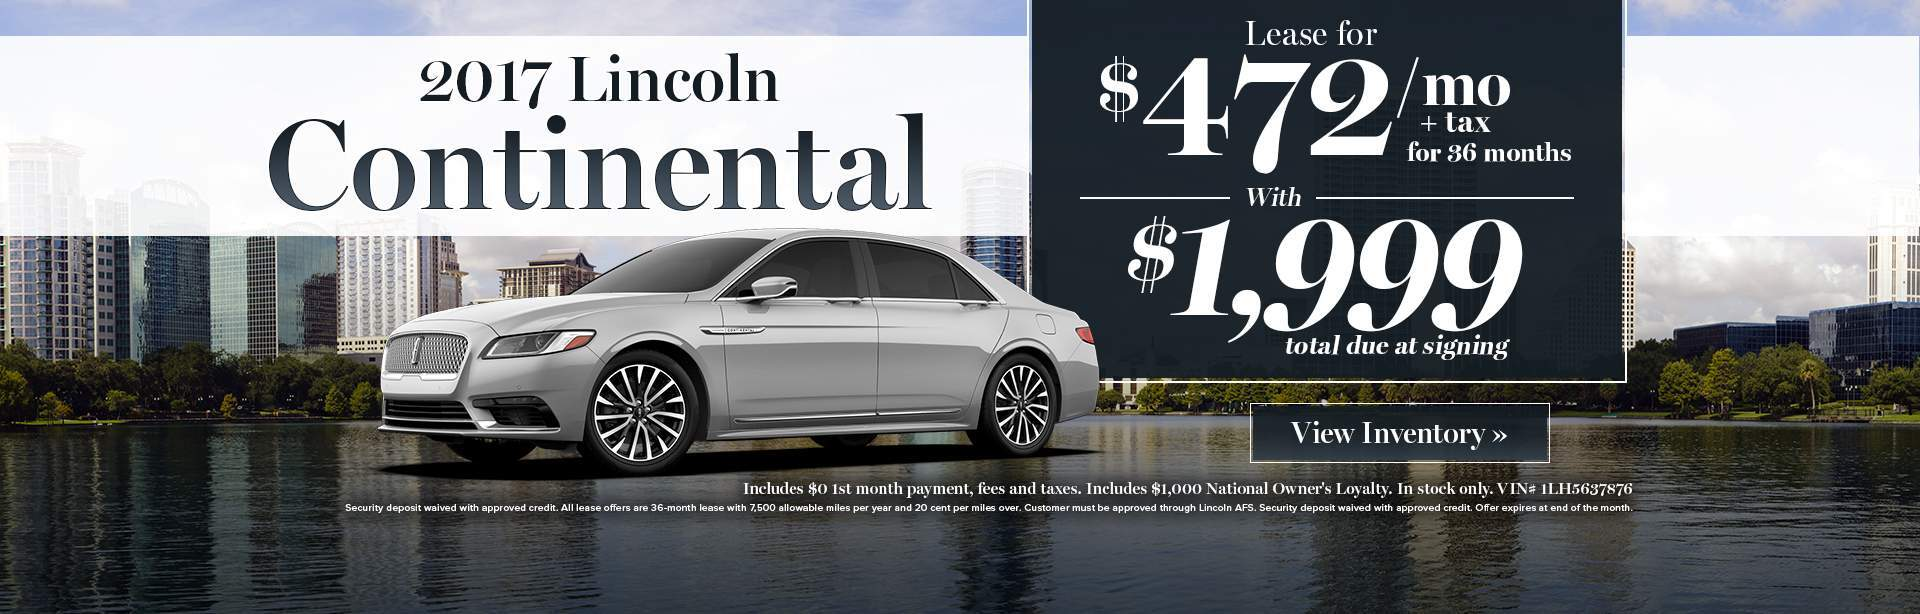 2017 Lincoln Continental lease special